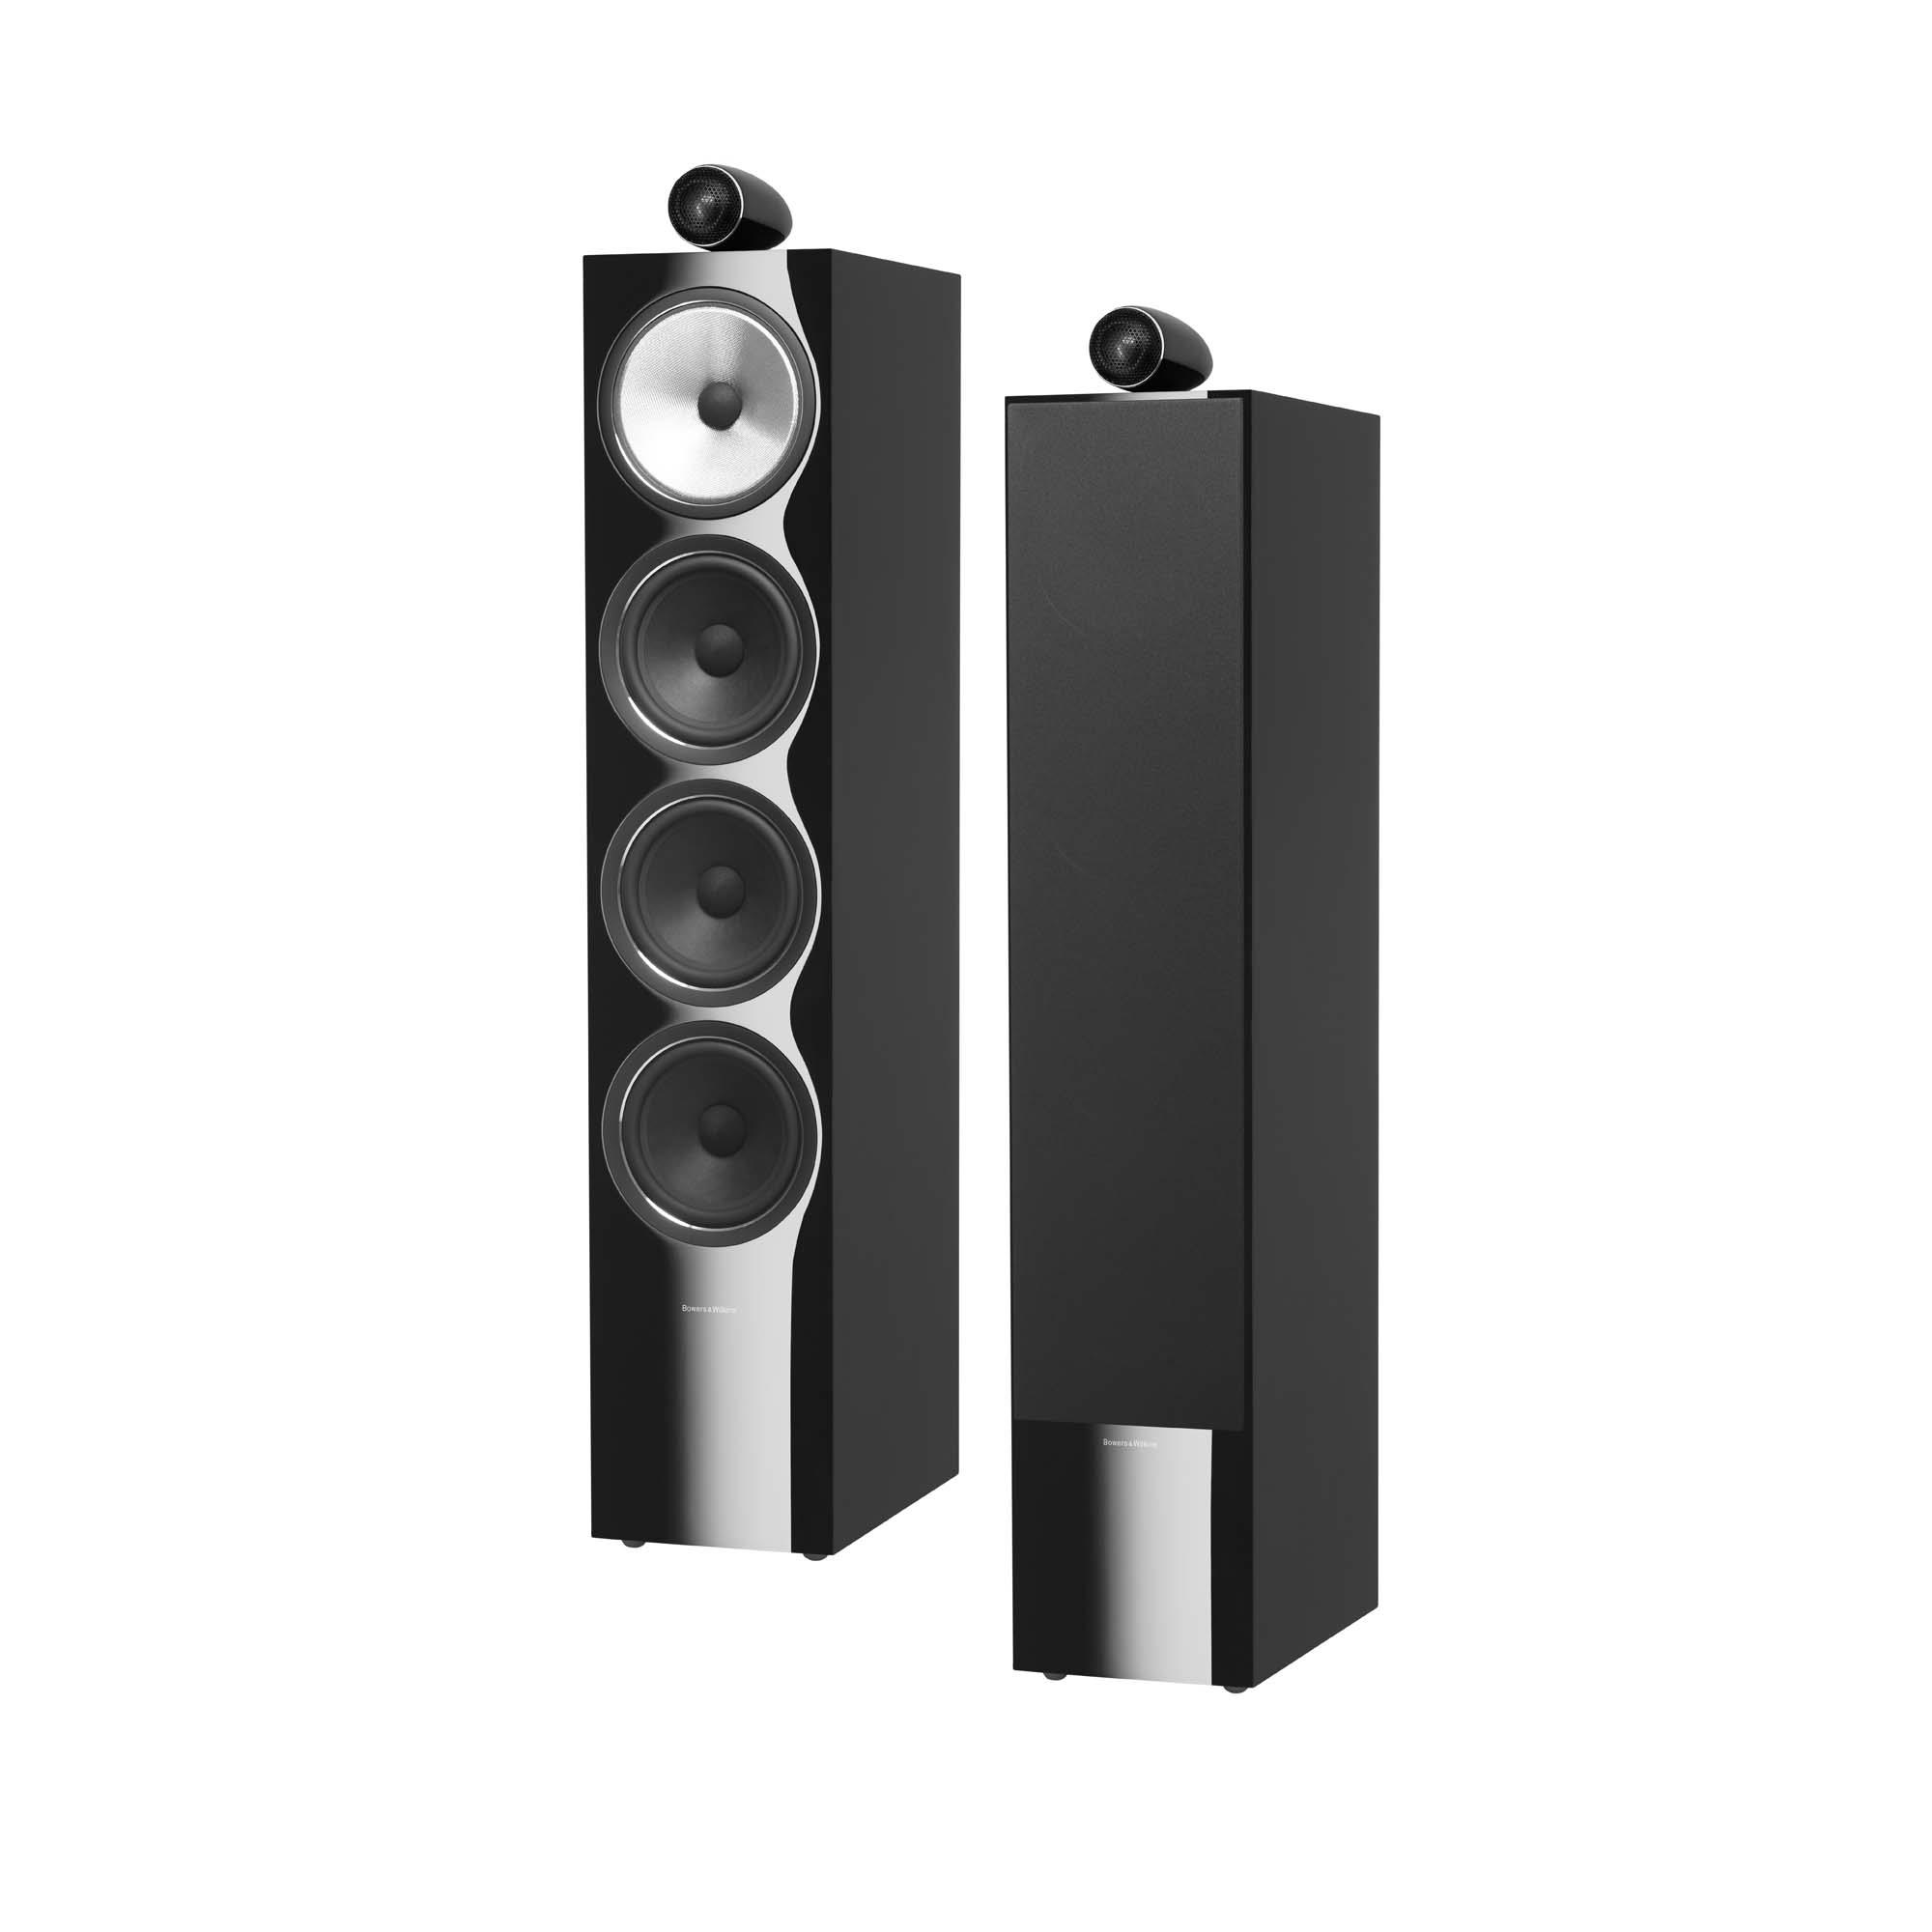 Sevenoaks Sound And Vision Bowers Amp Wilkins 702 S2